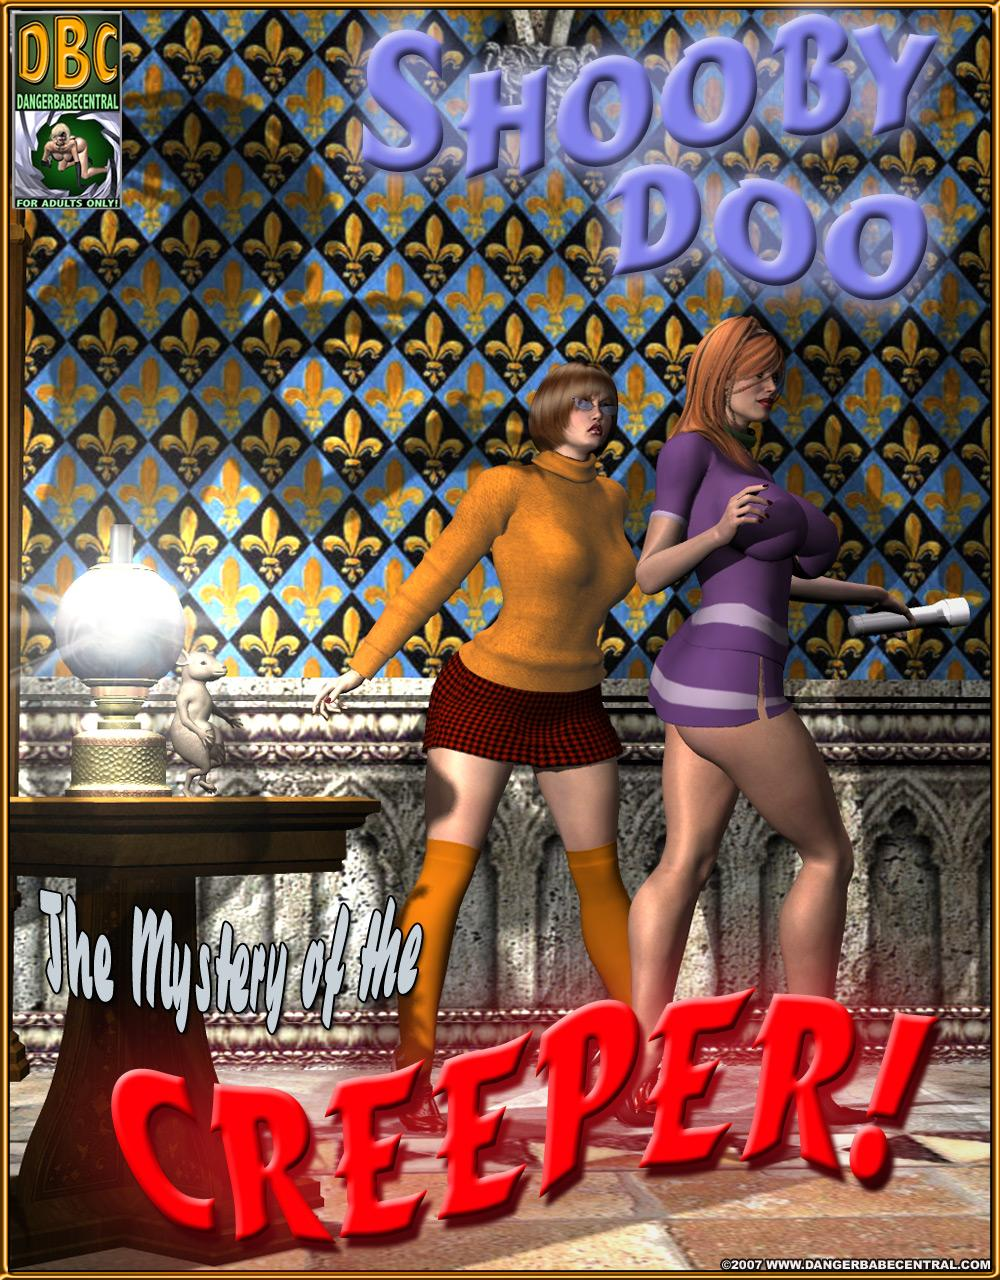 Scooby Doo-The Mystery of the CREEPER!